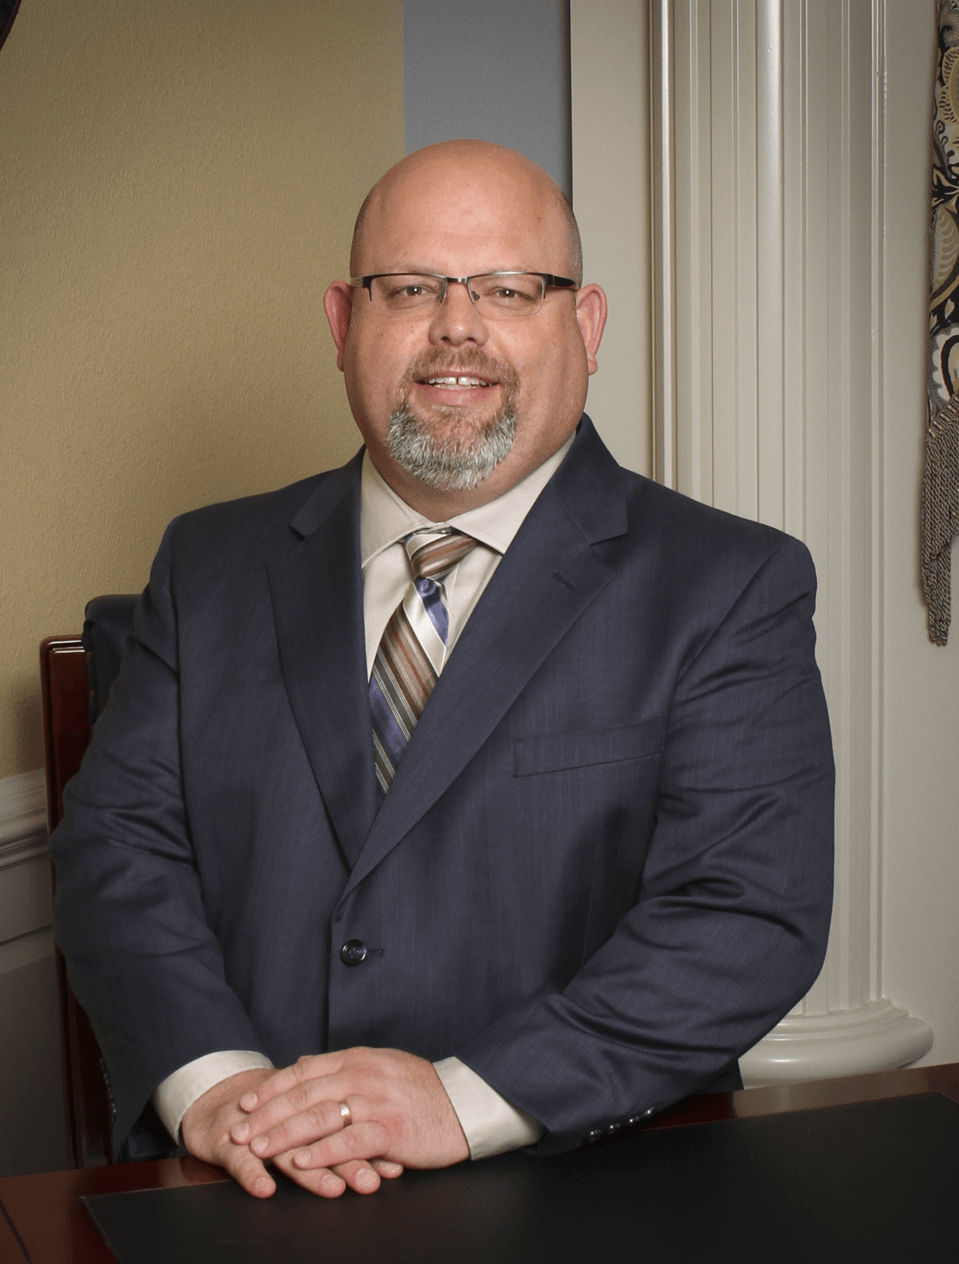 Tony M. May, Esq. Las Vegas Business Attorney and Construction Lawyer